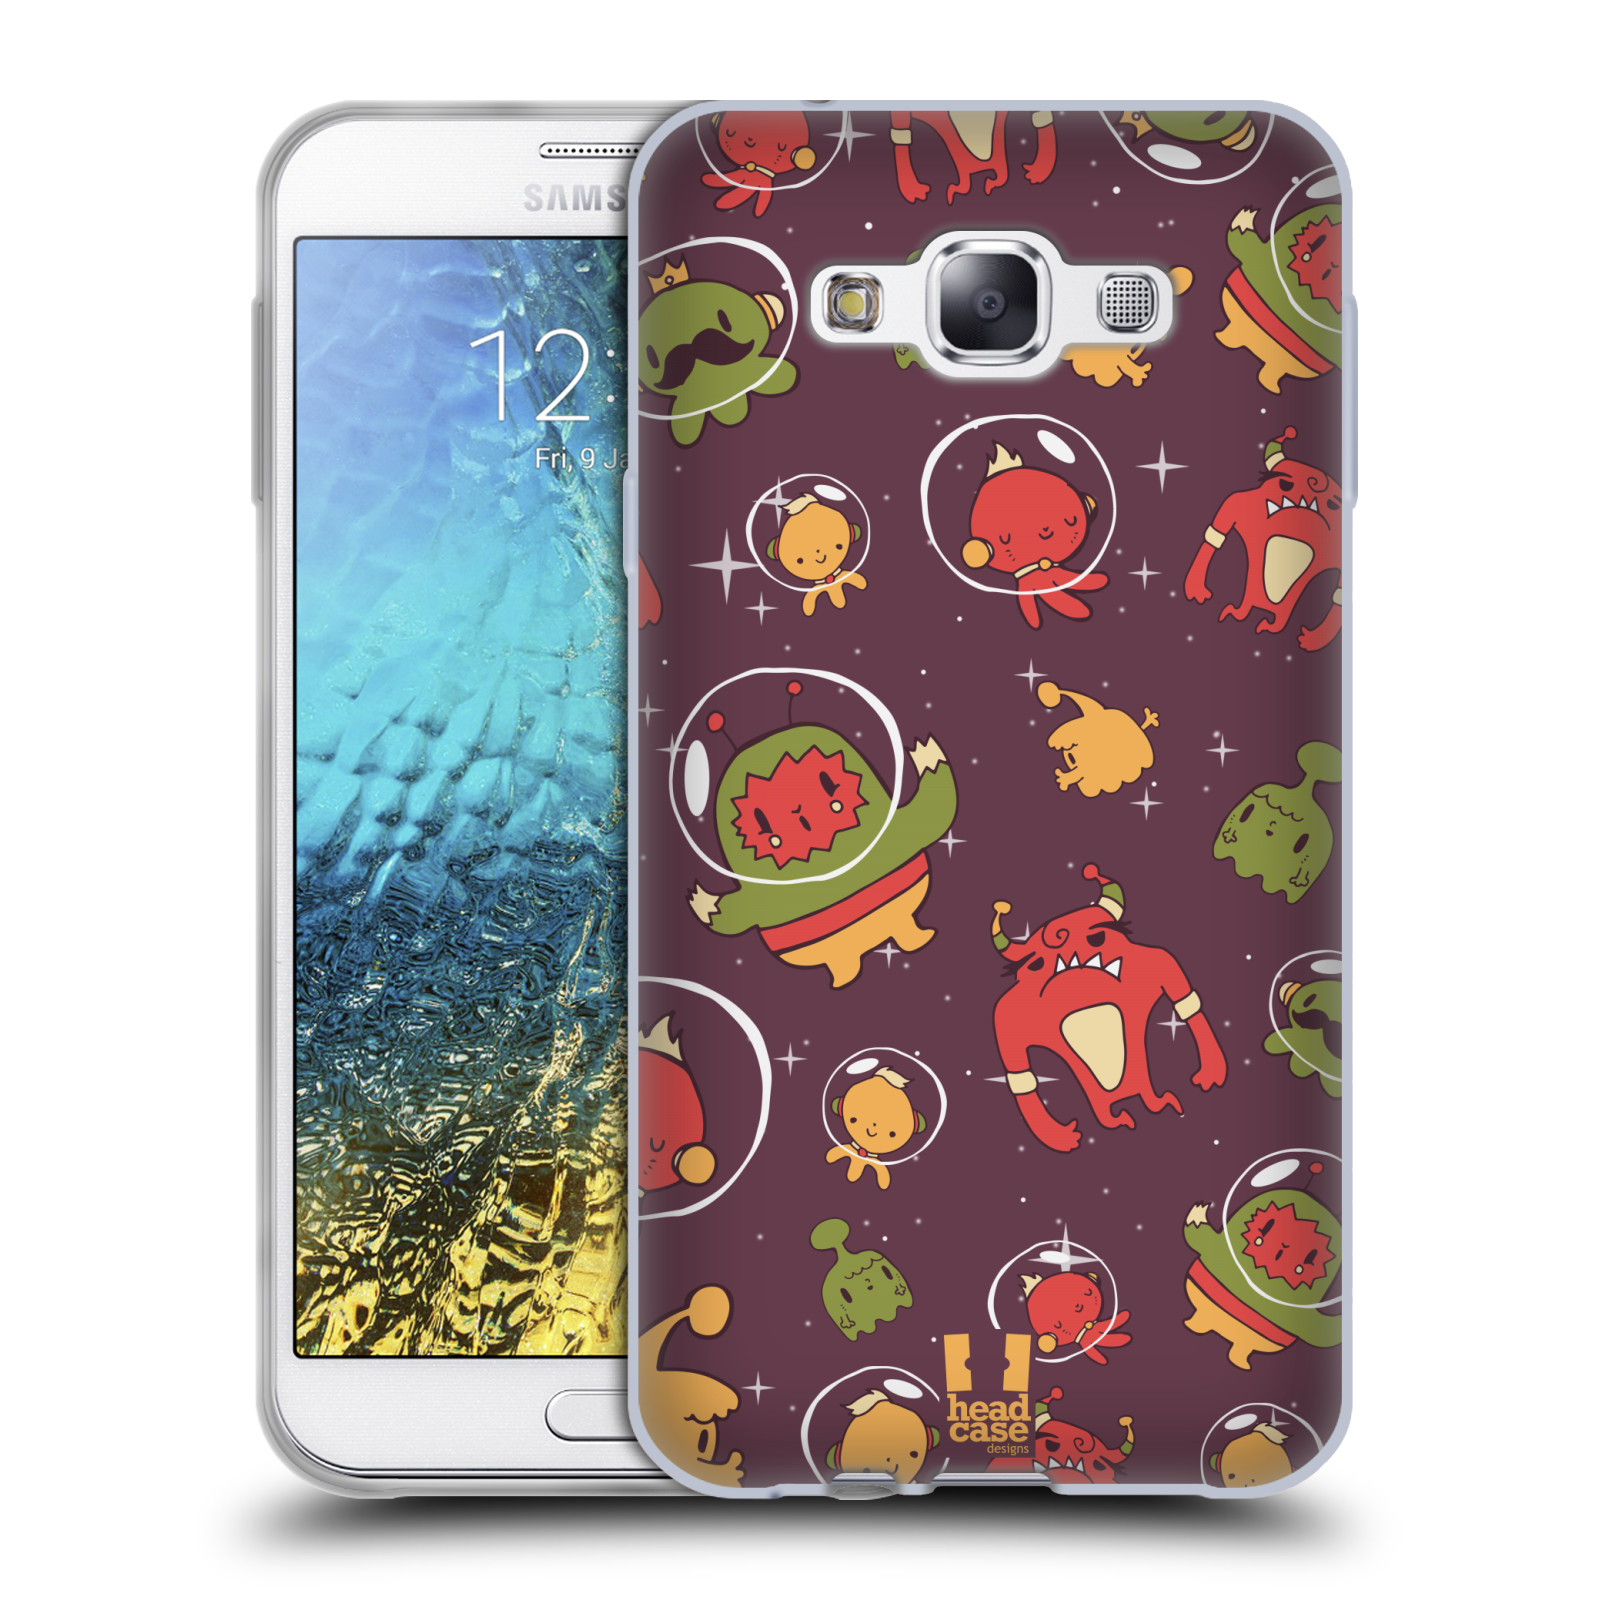 HEAD-CASE-DESIGNS-SPACE-PATTERN-SOFT-GEL-CASE-FOR-SAMSUNG-PHONES-3